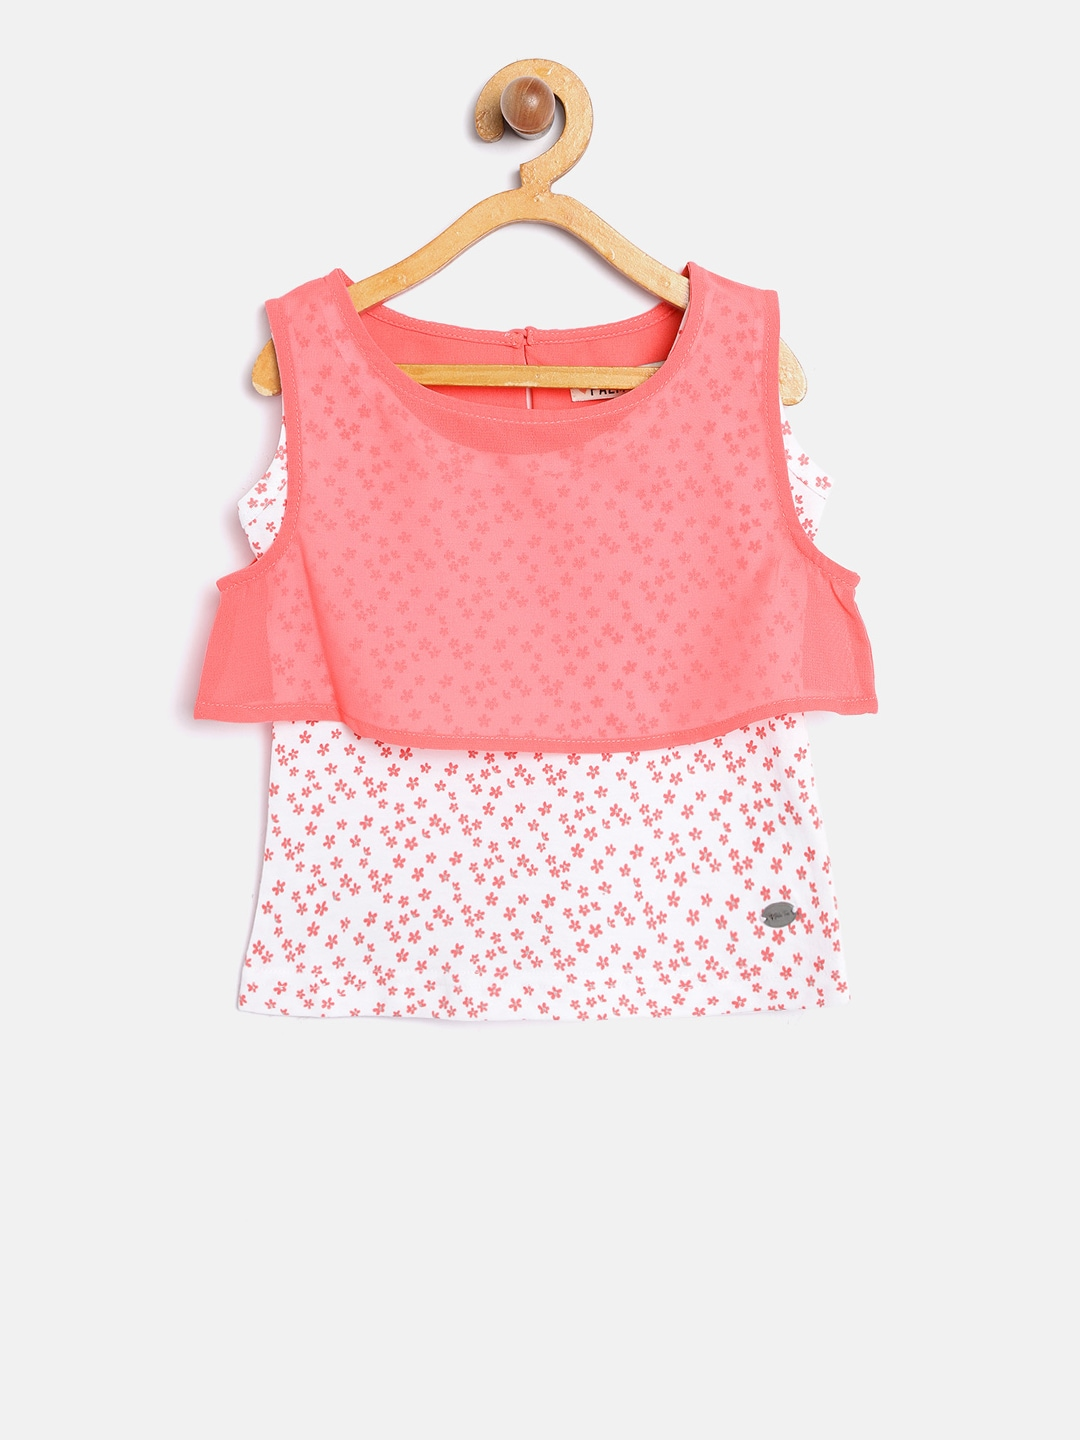 b3a9f56979db Girls Tops - Buy Stylish Top for Girls Online in India